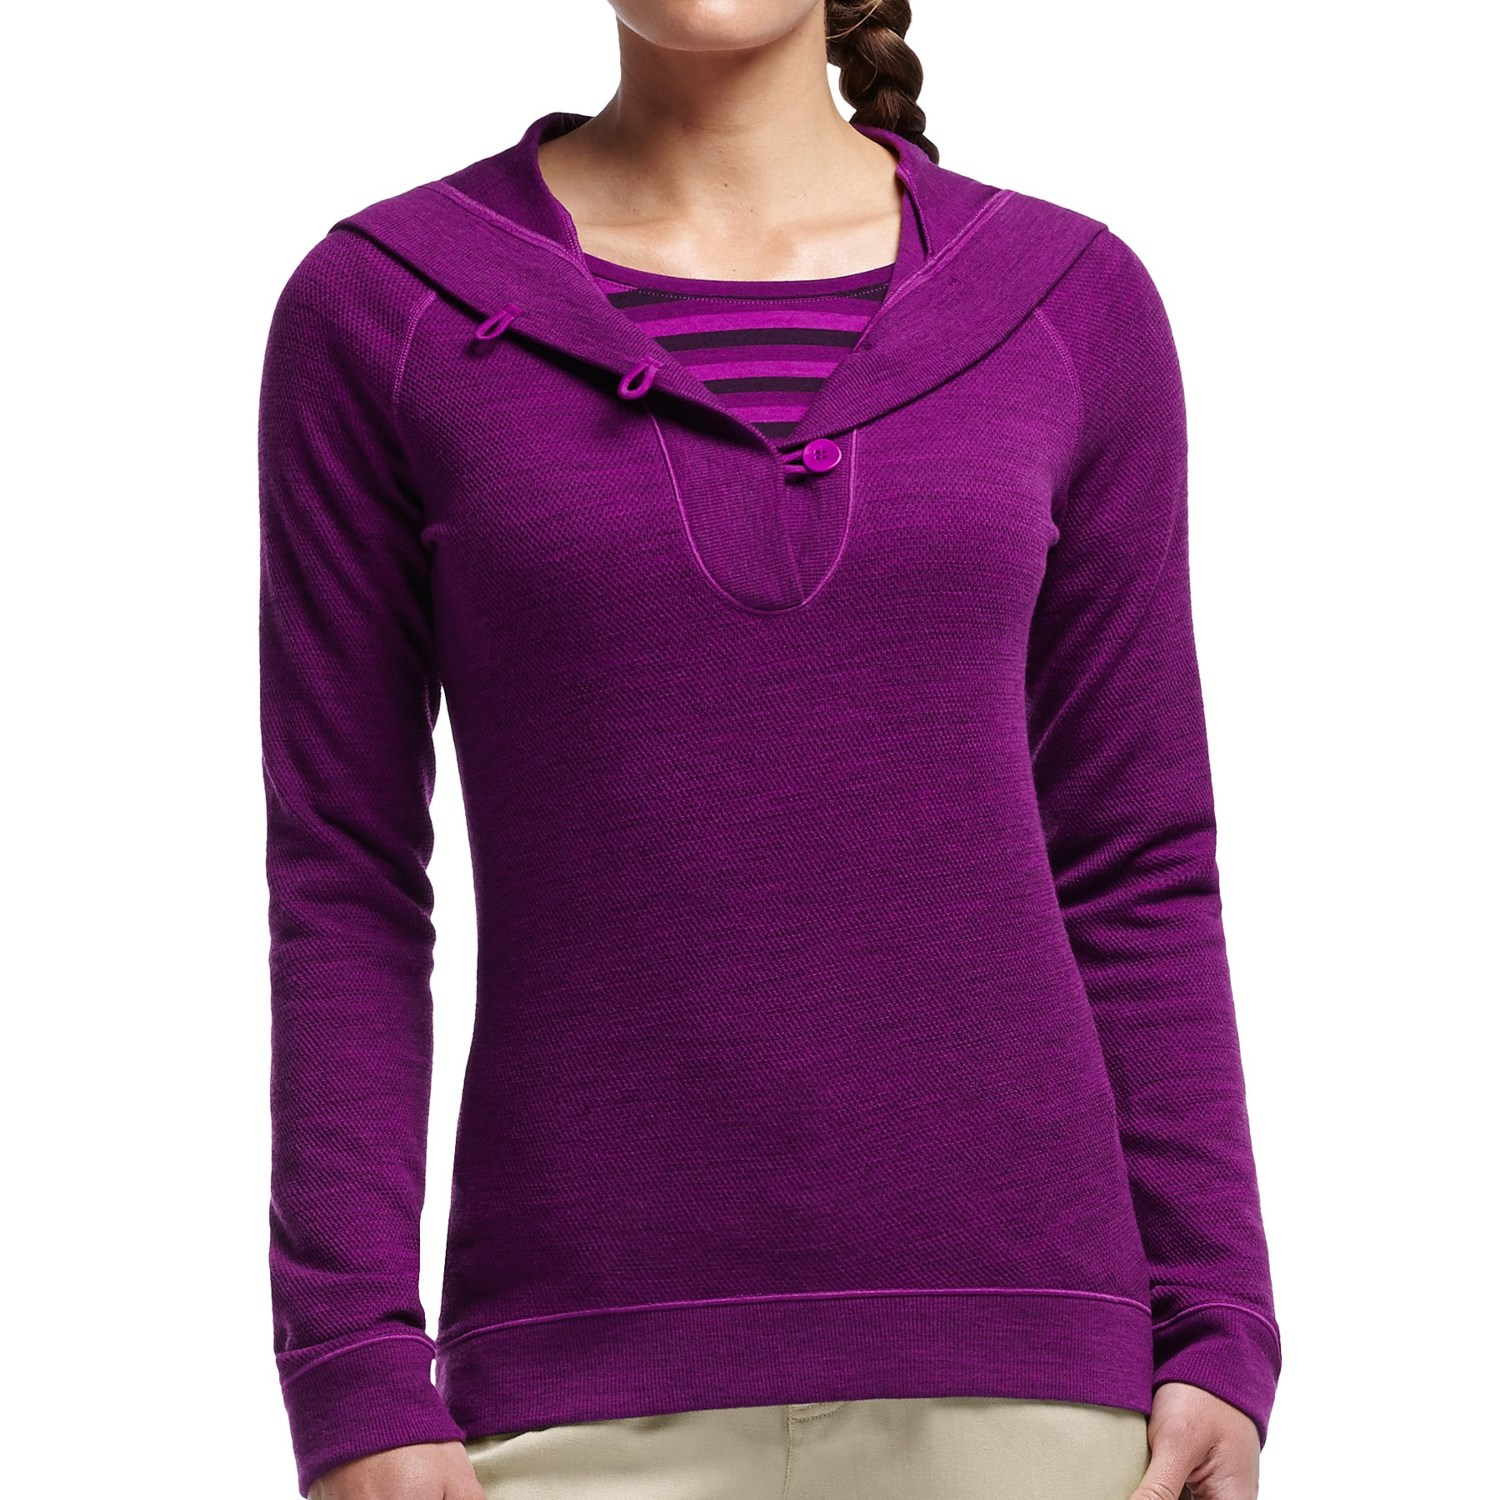 Icebreaker crave hooded shirt merino wool upf 20 long for Merino wool shirt womens